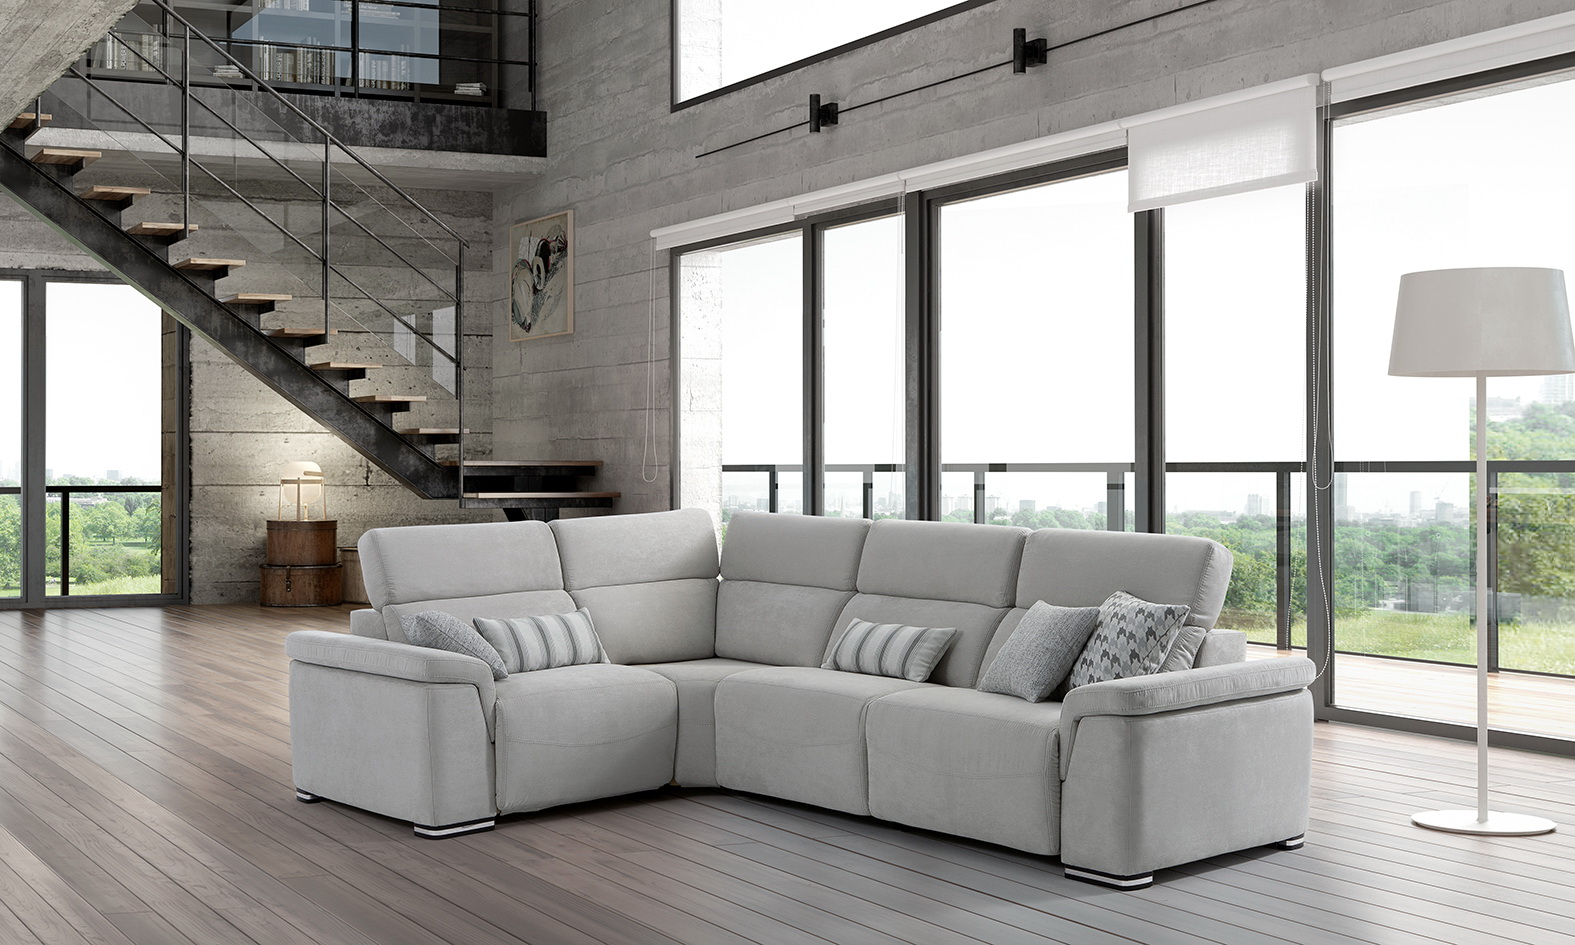 Lody Sof S Modulares By Mayor Tapizados Muebles Anto N # Muebles Soriano